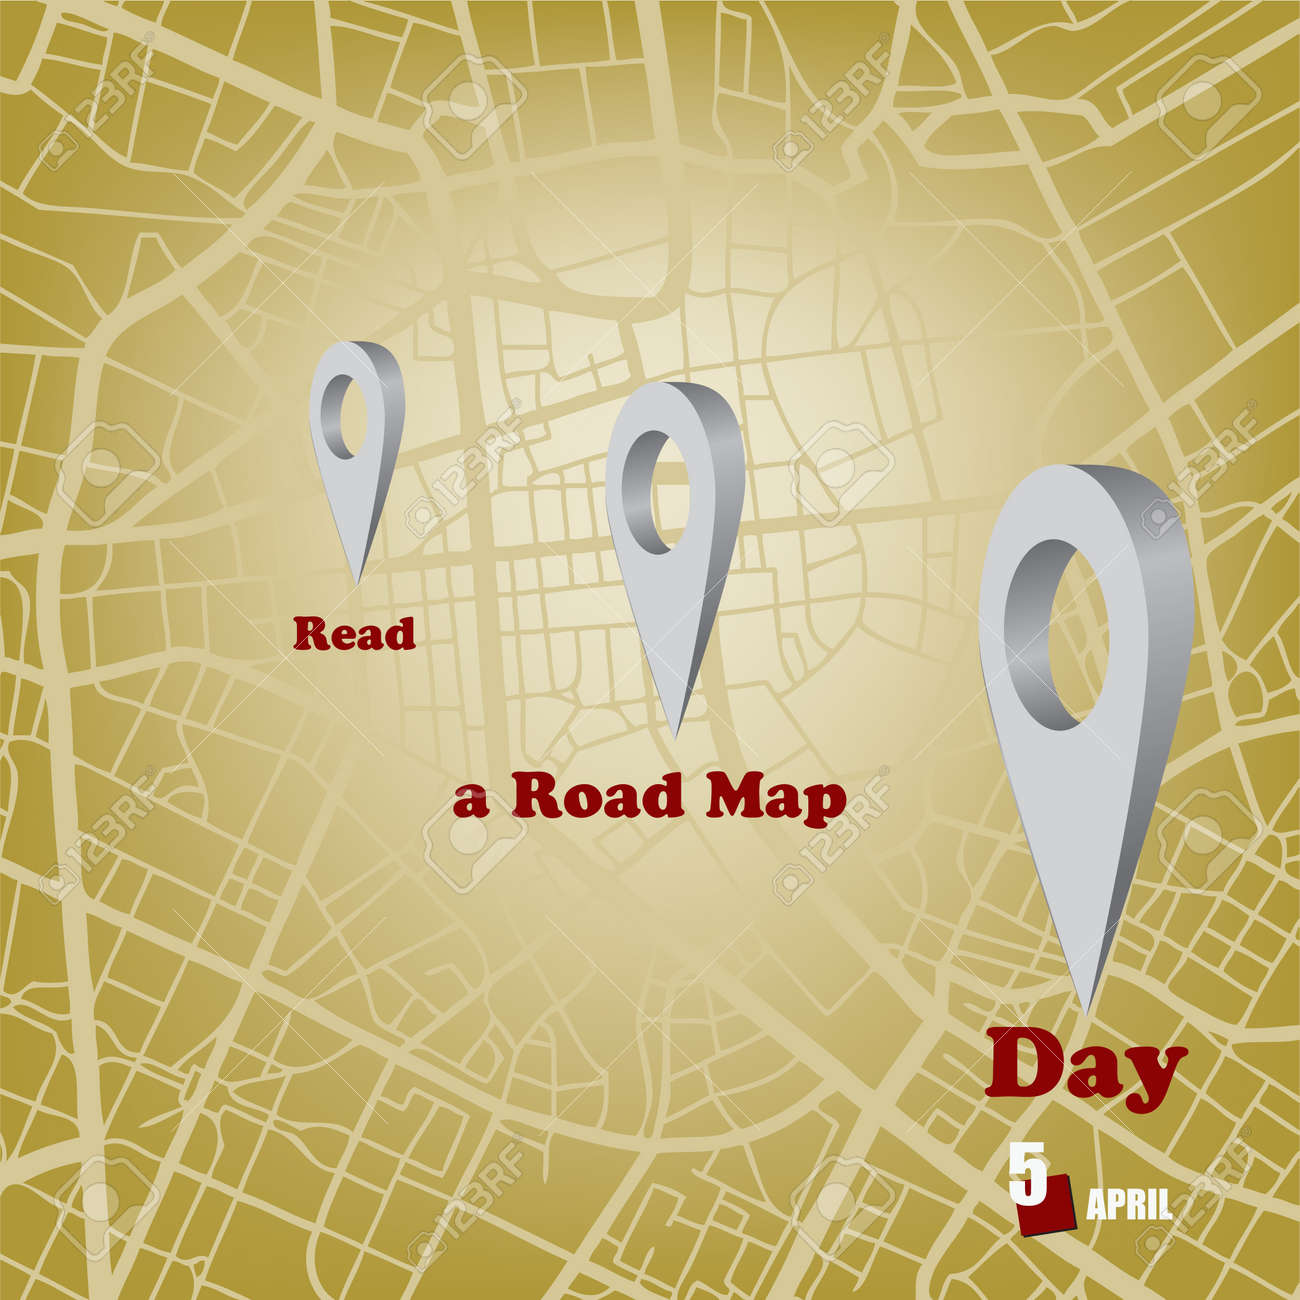 The calendar event is celebrated in april - Read a Road Map Day - 169061375